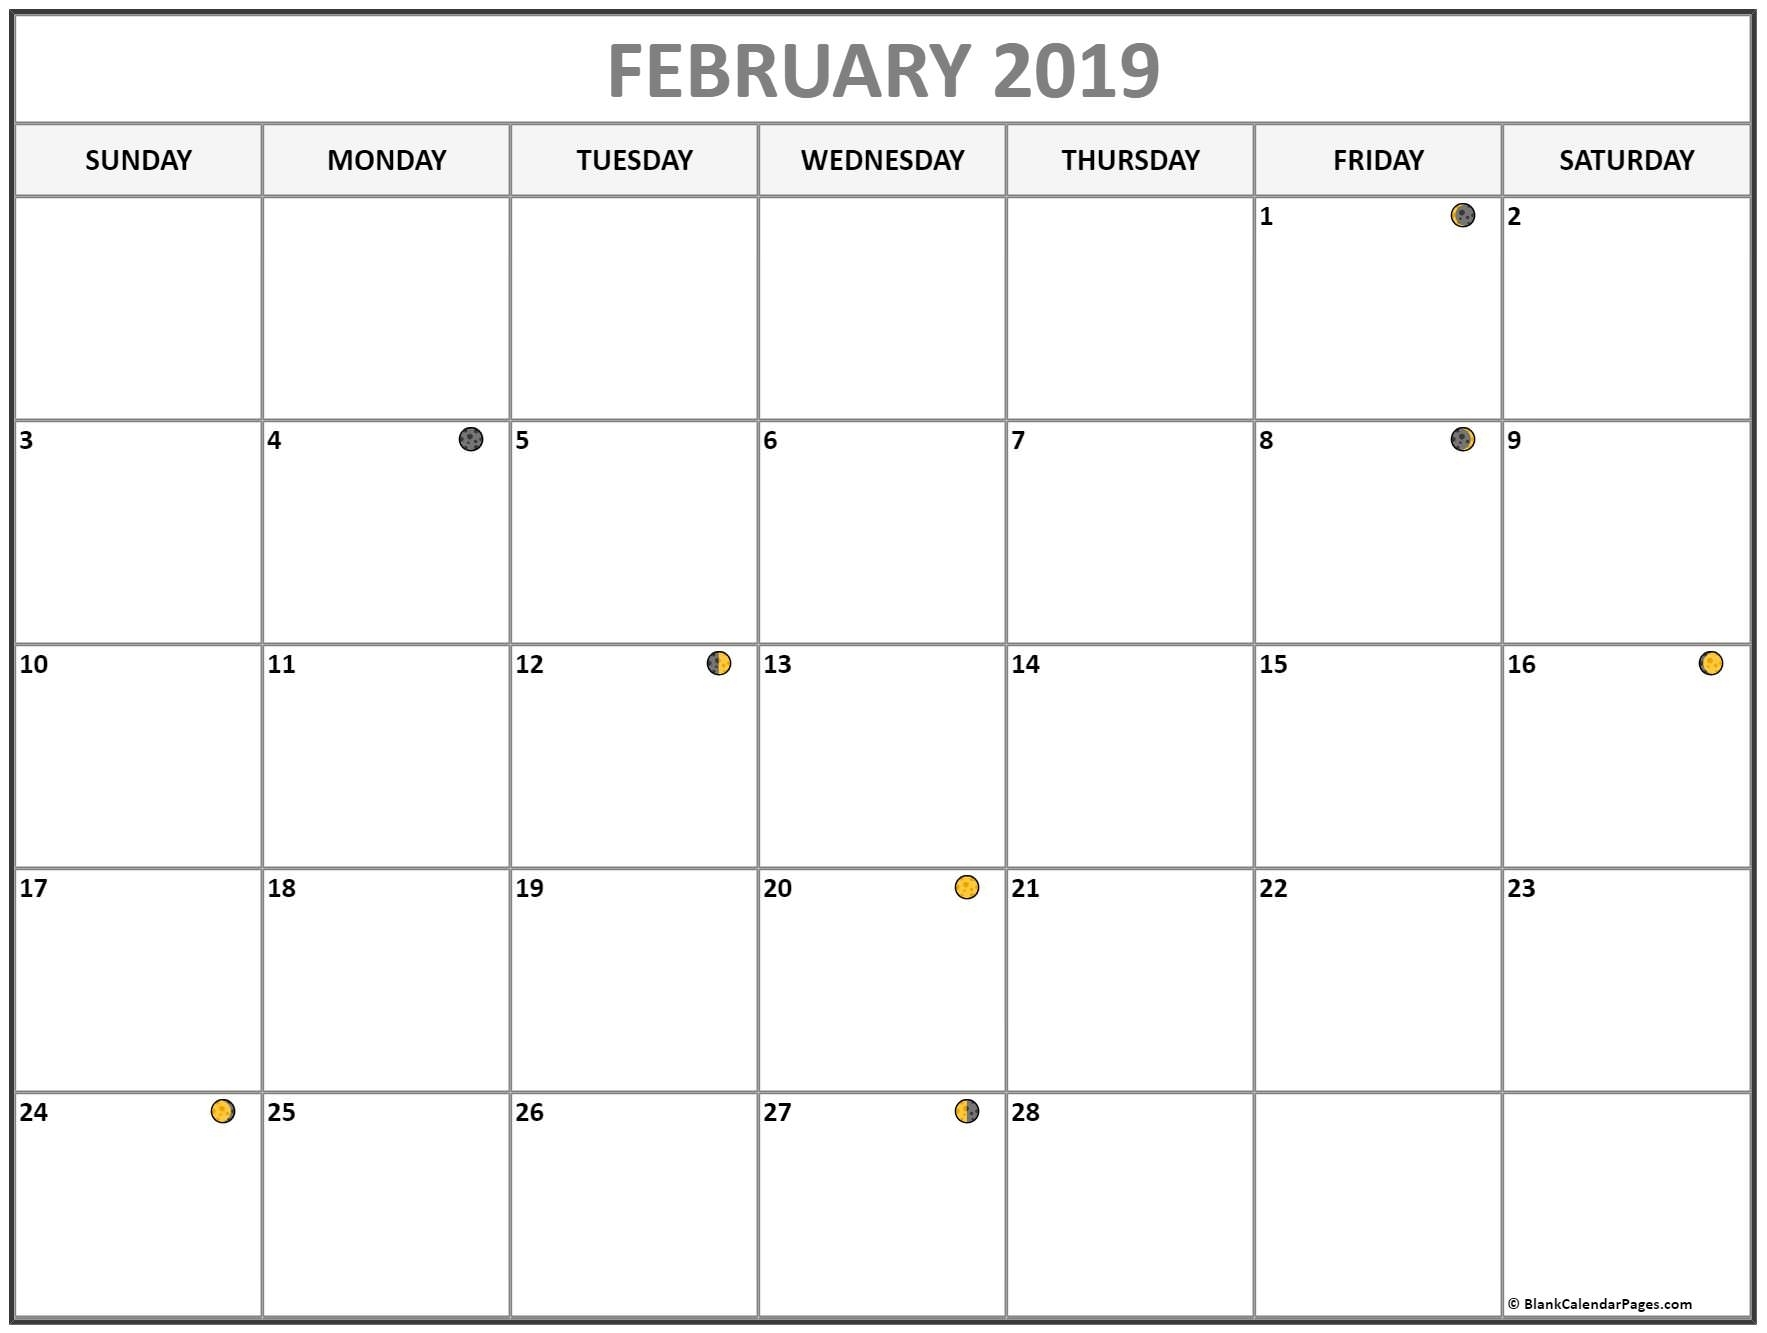 Lunar Moon Phases Calendar February 2019